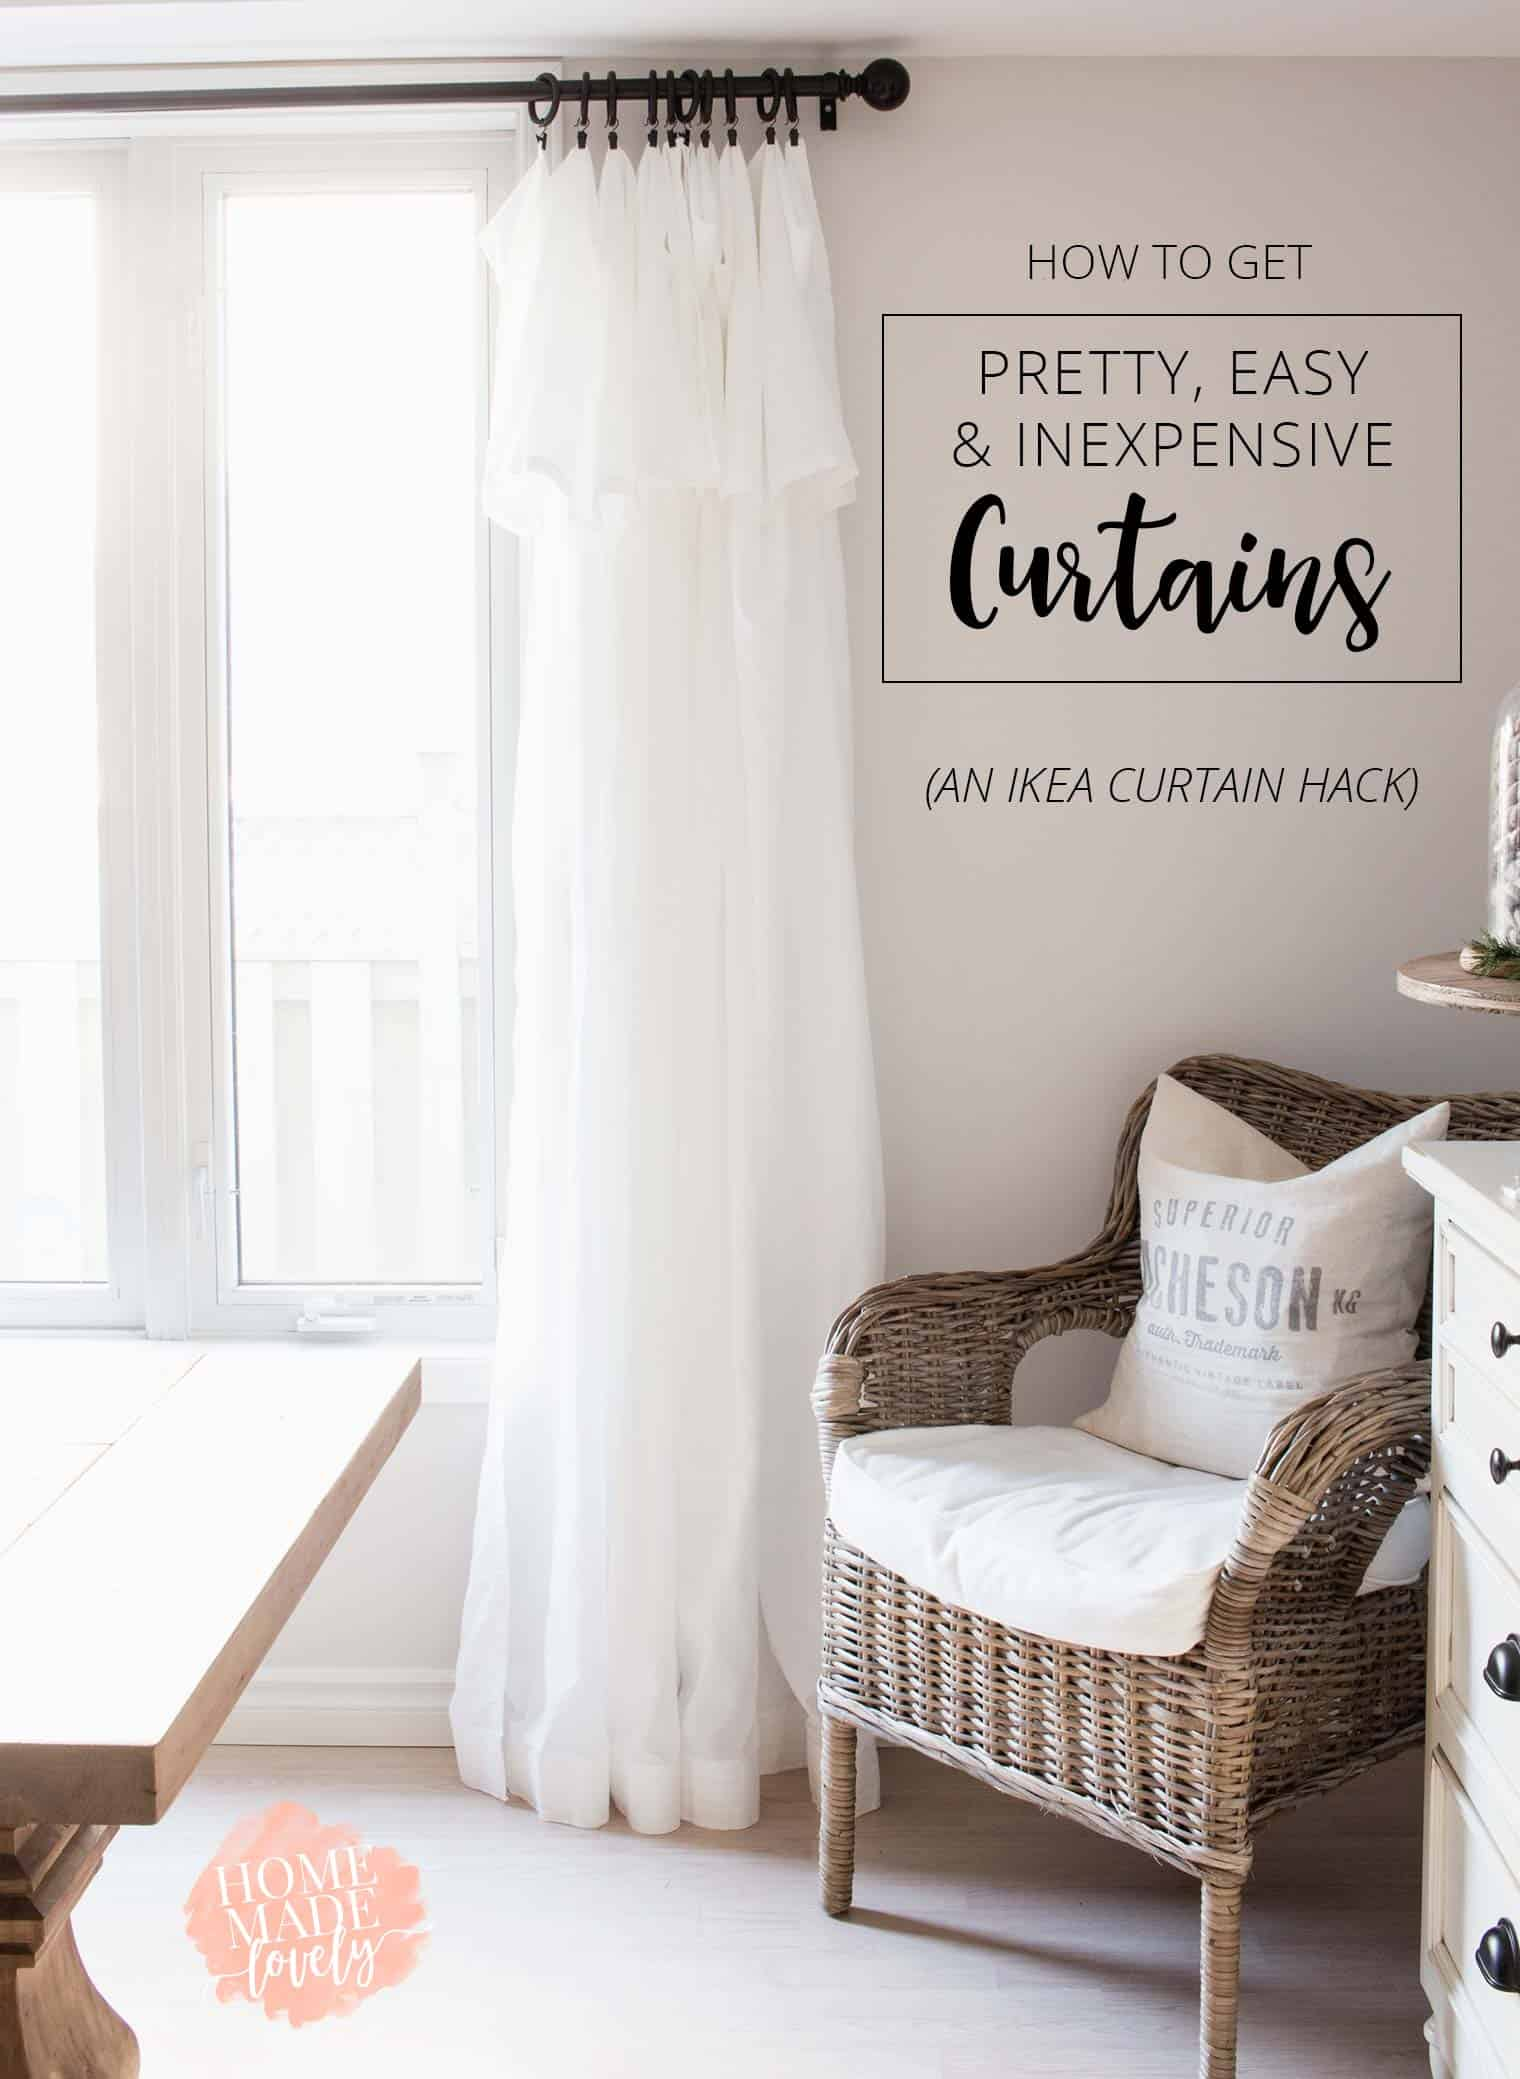 Curtains Are Often Expensive Or Just Plain Ugly! Get Pretty, Easy,  Inexpensive Curtains